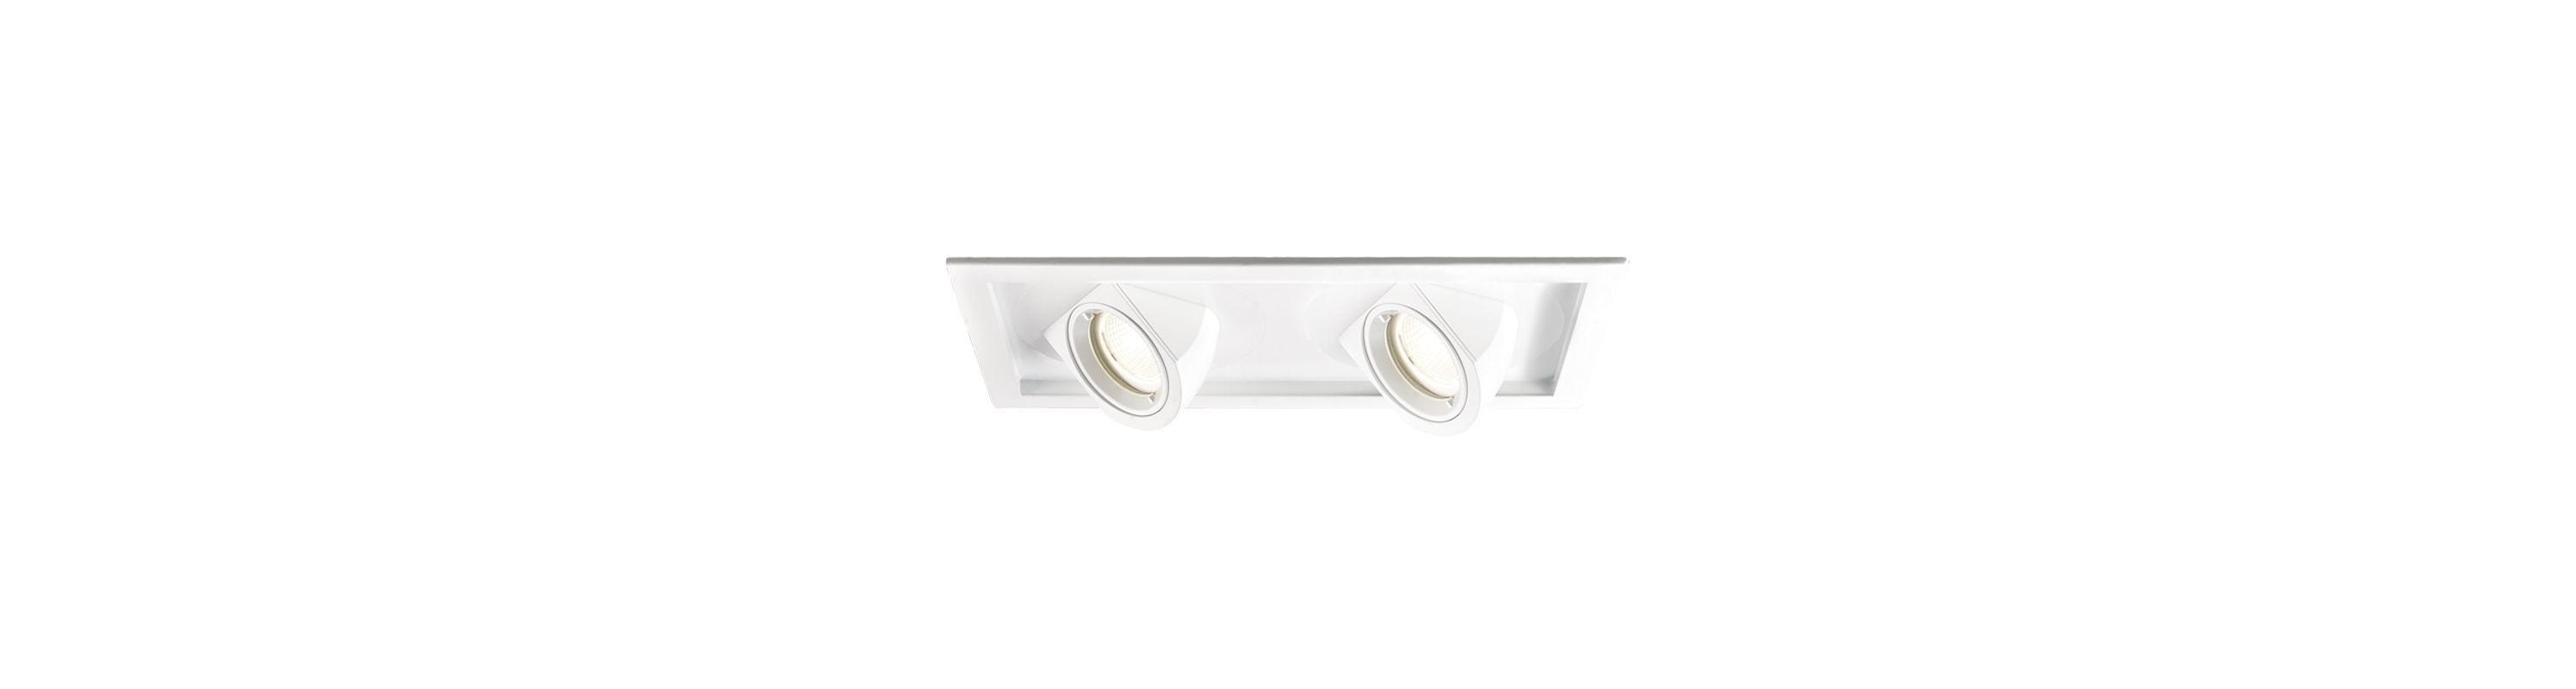 WAC Lighting MT-5LD225H Multiple Spot LED Recessed Light Housing for Sale $261.00 ITEM: bci2426879 ID#:MT-5LD225H-NA UPC: 790576279282 :